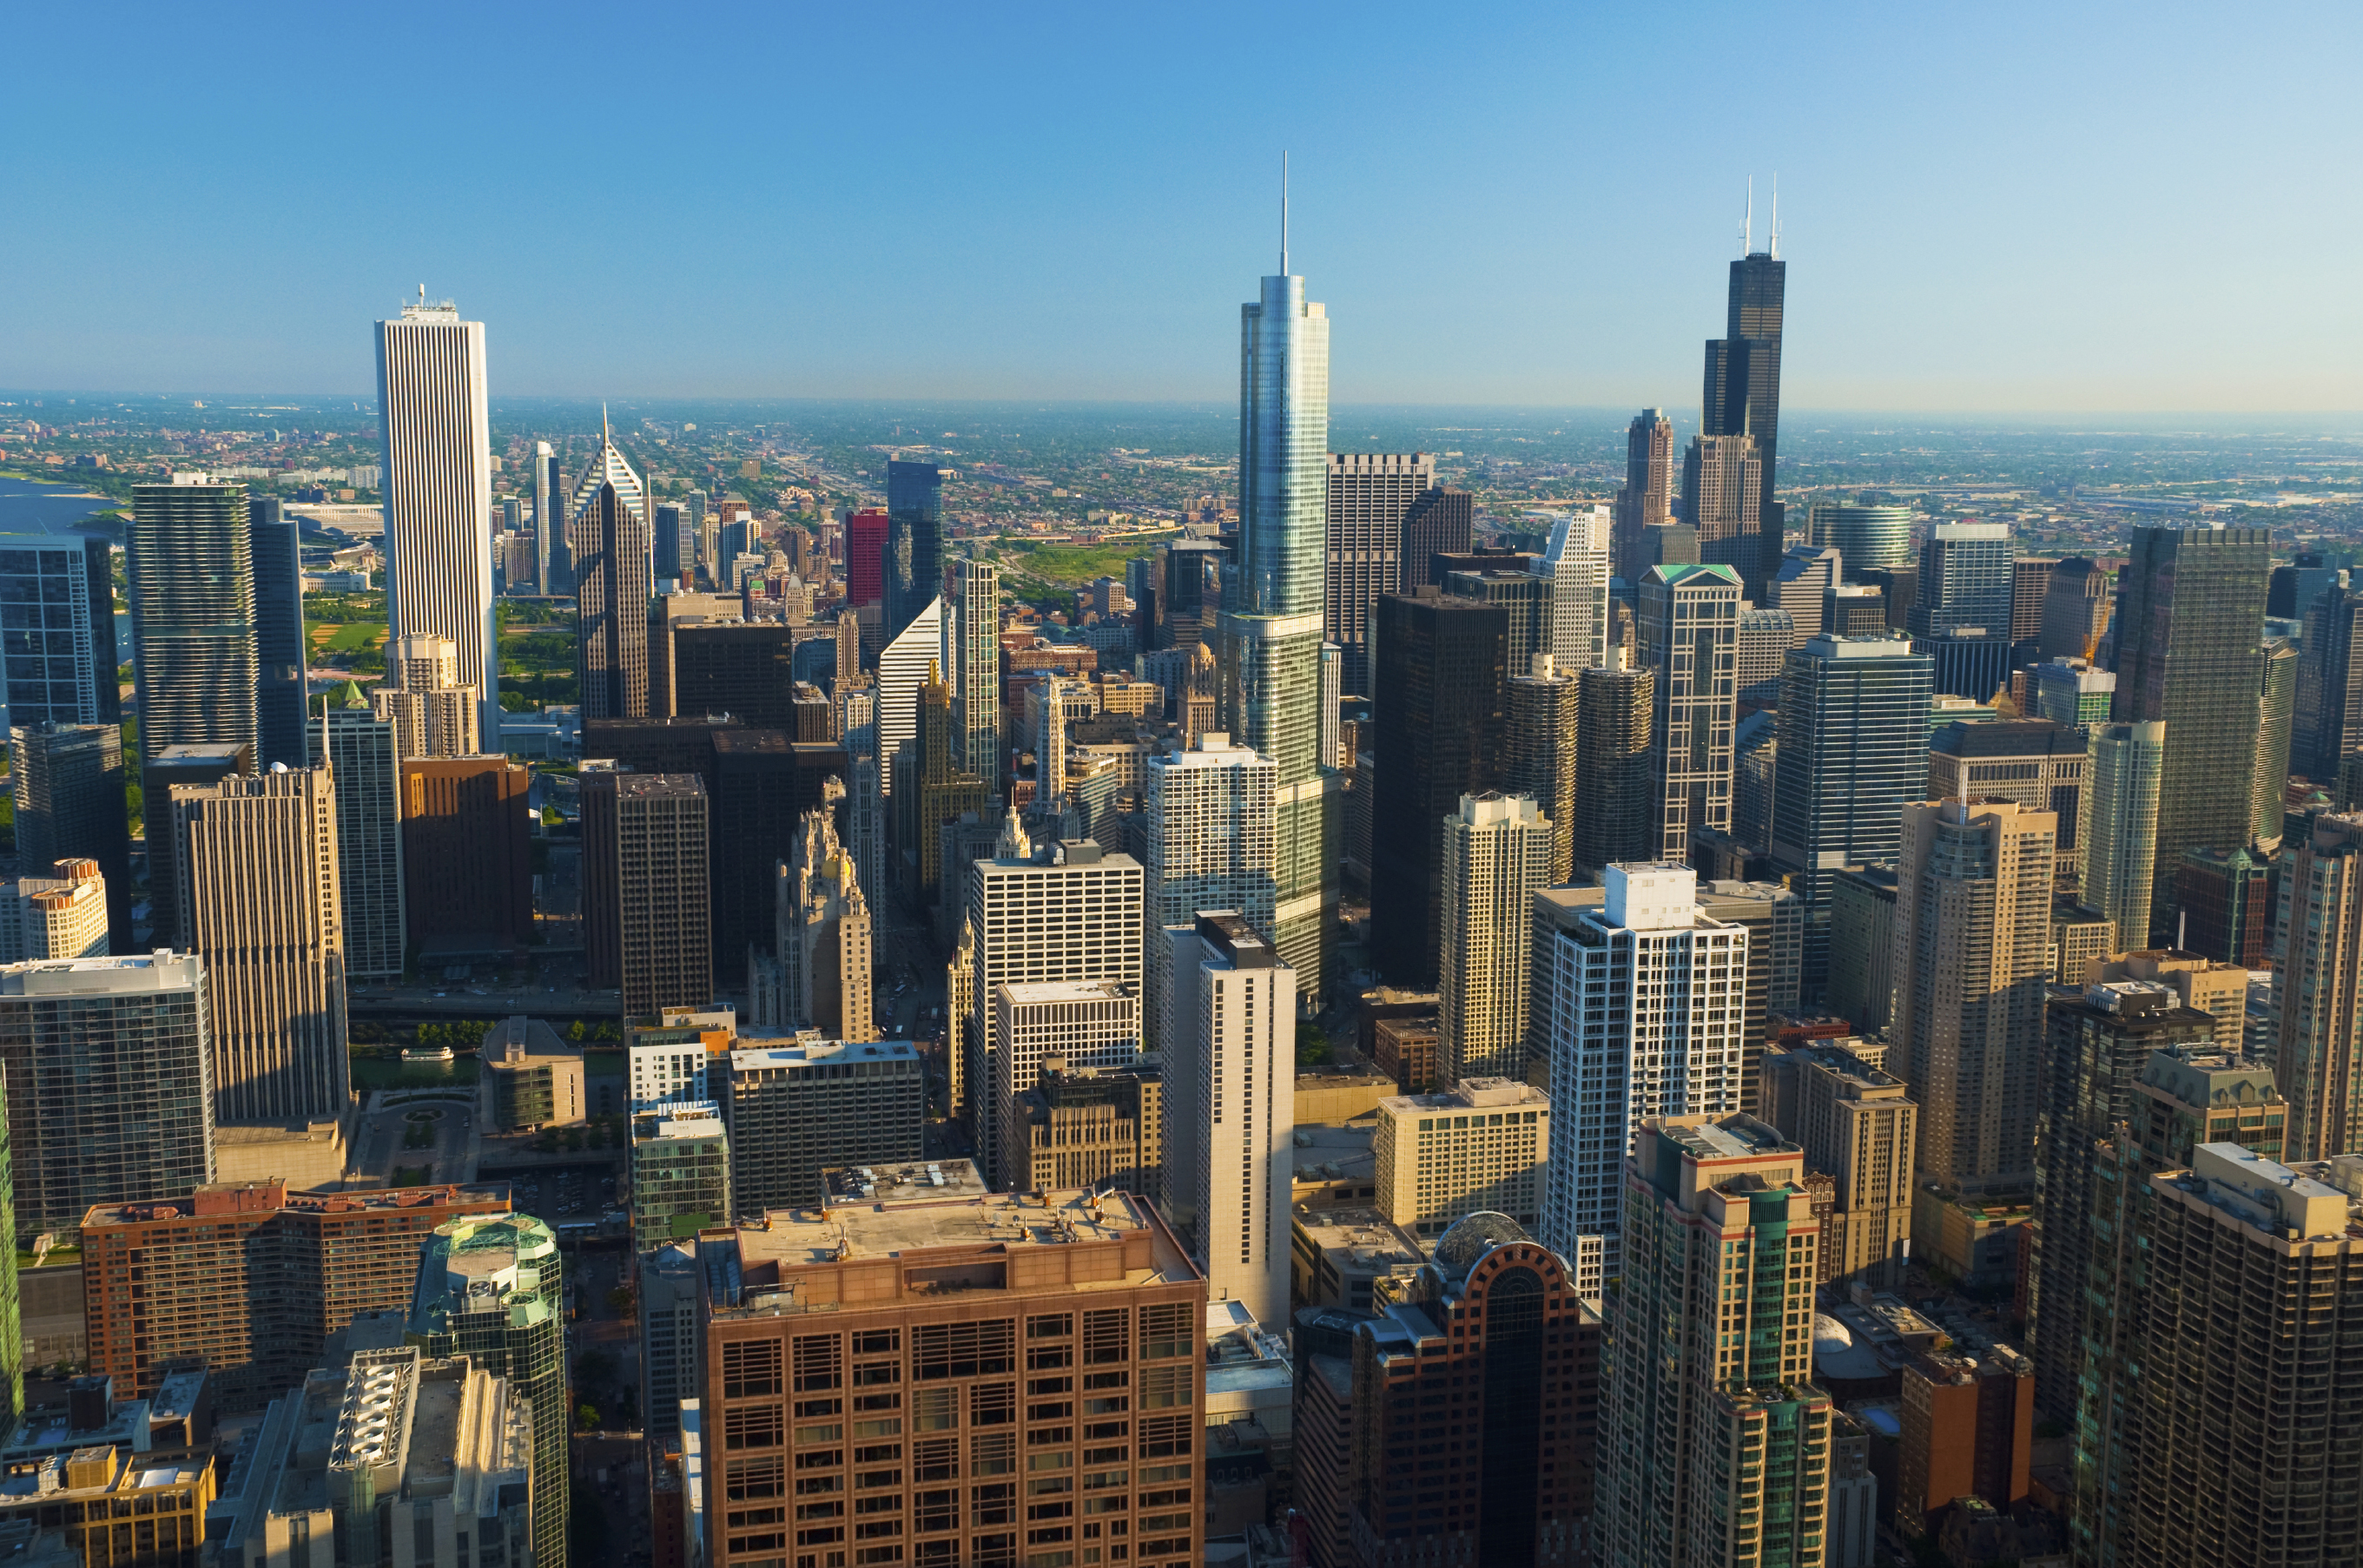 CommercialForum Aerial View of Downtown Chicago